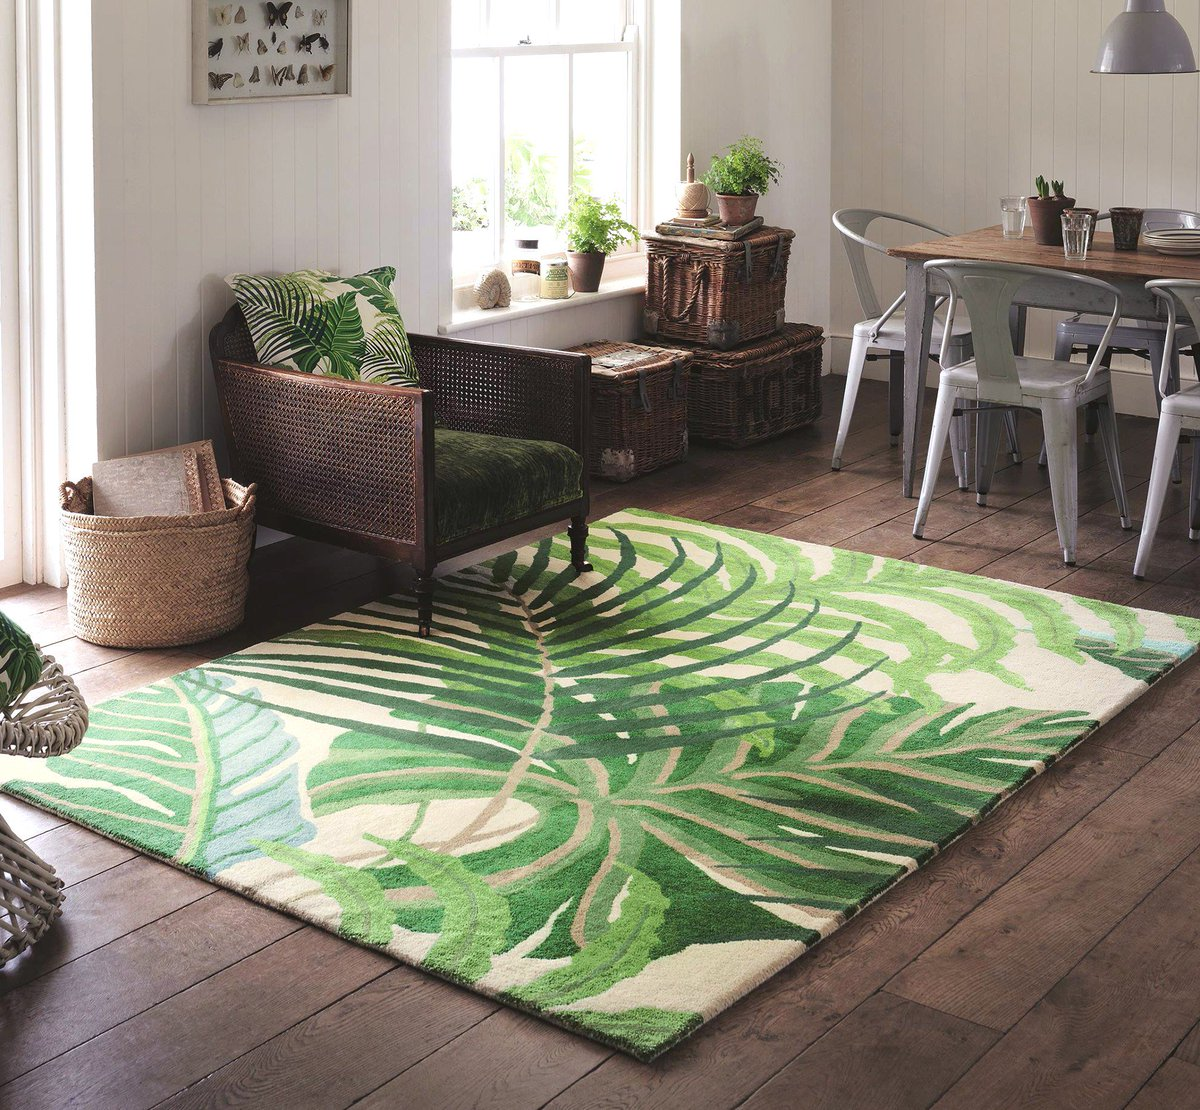 Modern Rugs Uk On Twitter Whisk Your Home Off To The Tropics With Pablackhomes Our Manila Rug Https T Co Dgkevbsdys